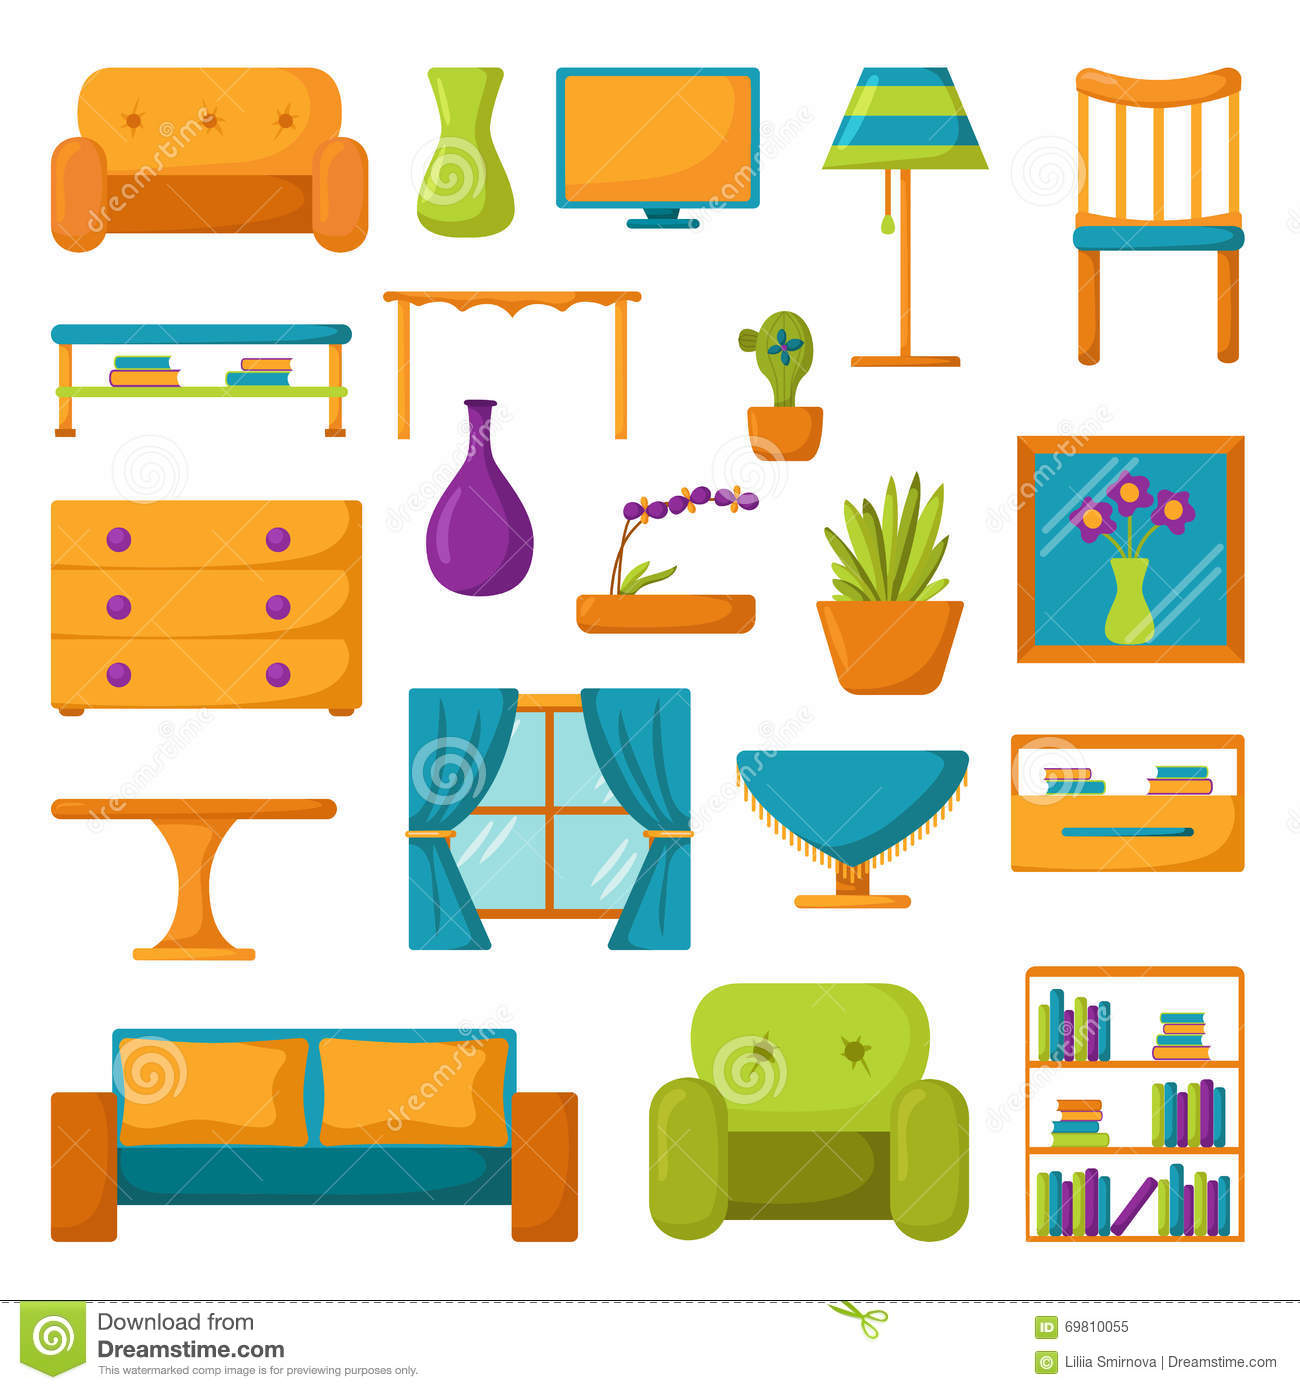 Living room icons interior and house furniture stock for Muebles en ingles